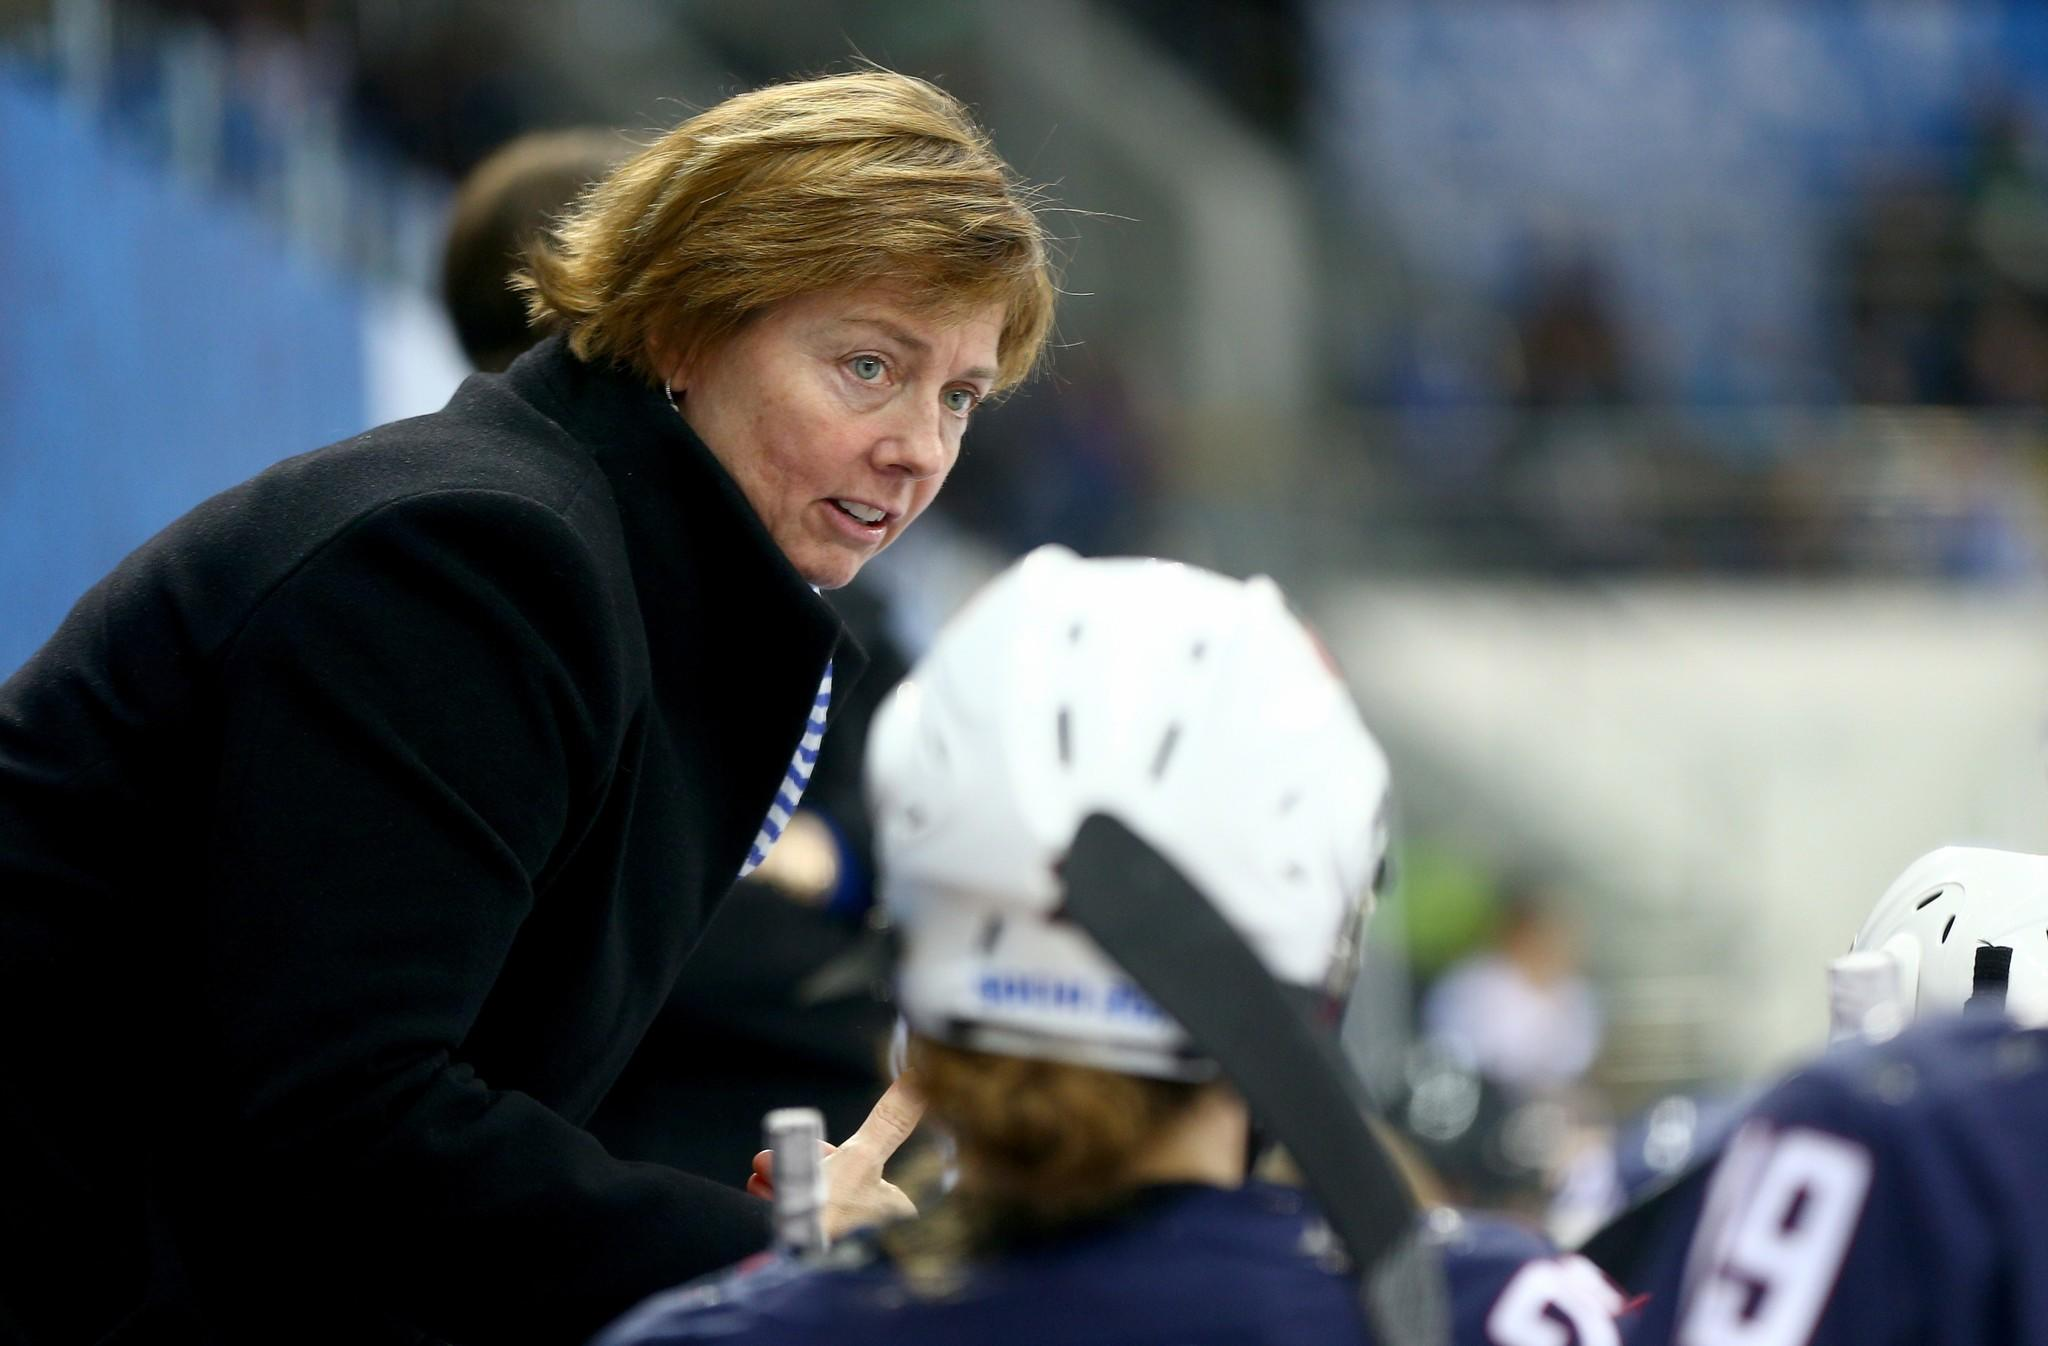 Head coach Katey Stone of the United States looks on against Canada during the Women's Ice Hockey Preliminary Round Group A game.